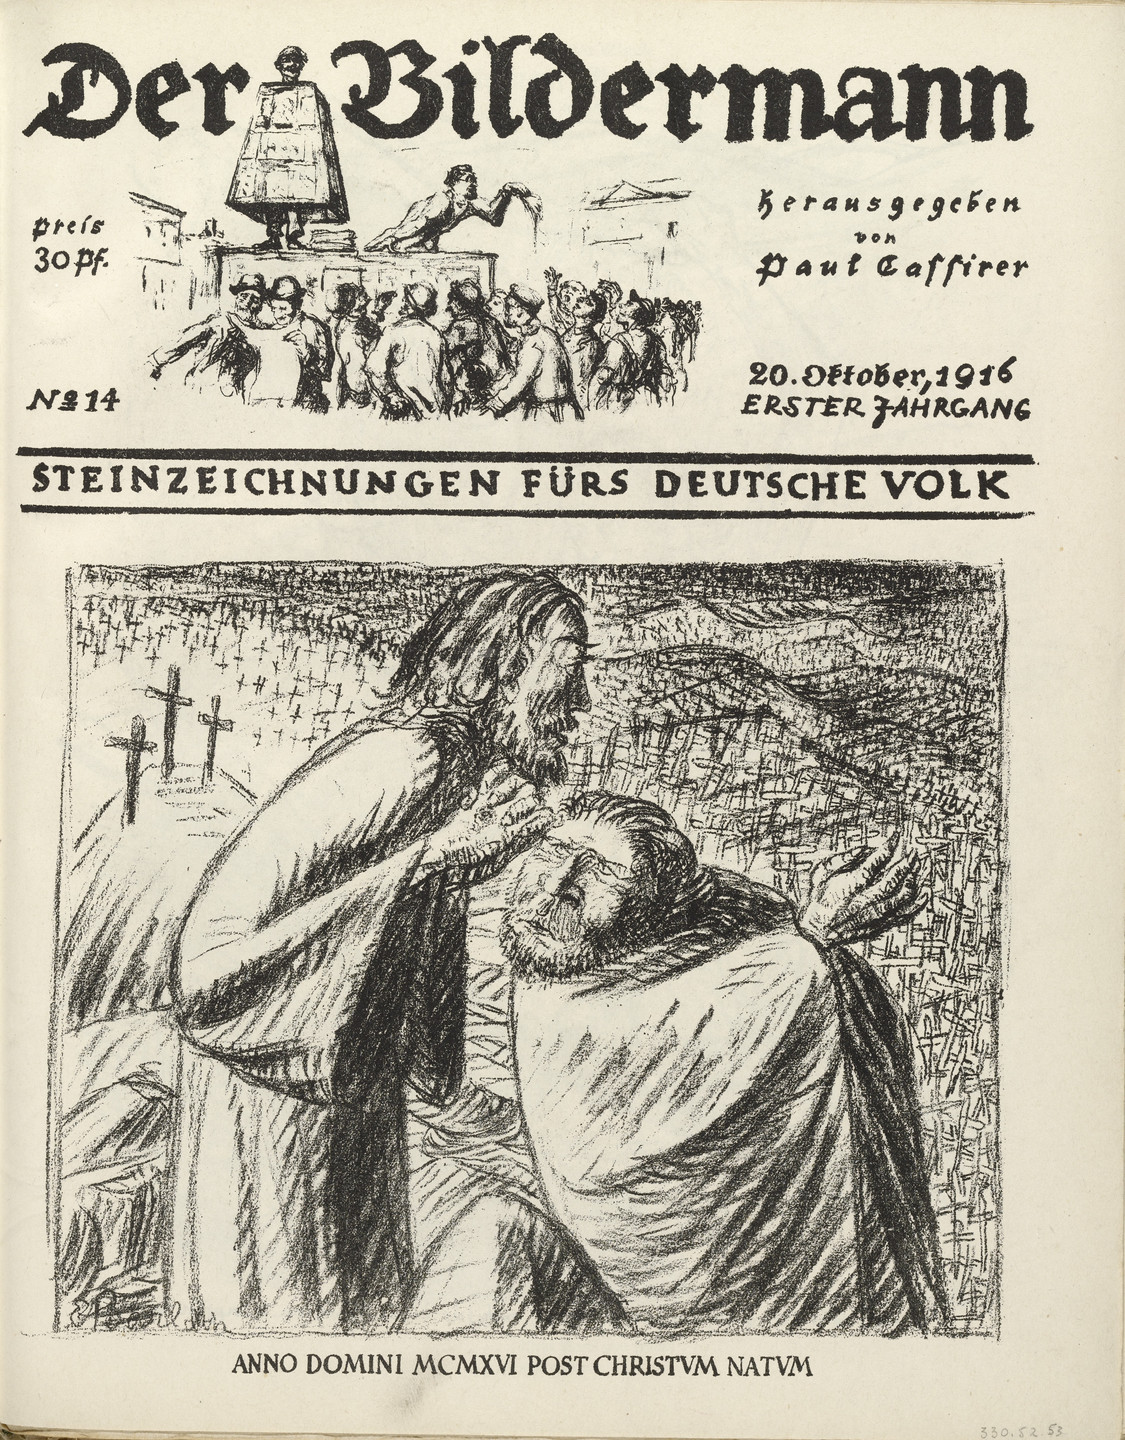 Ernst Barlach. The Year of Our Lord MCMXVI after Christ's Birth (Anno Domini MCMXVI post Christum natum) (front cover, foilio 28) from the periodical Der Bildermann, vol. 1, no. 14 (Oct 1916). 1916